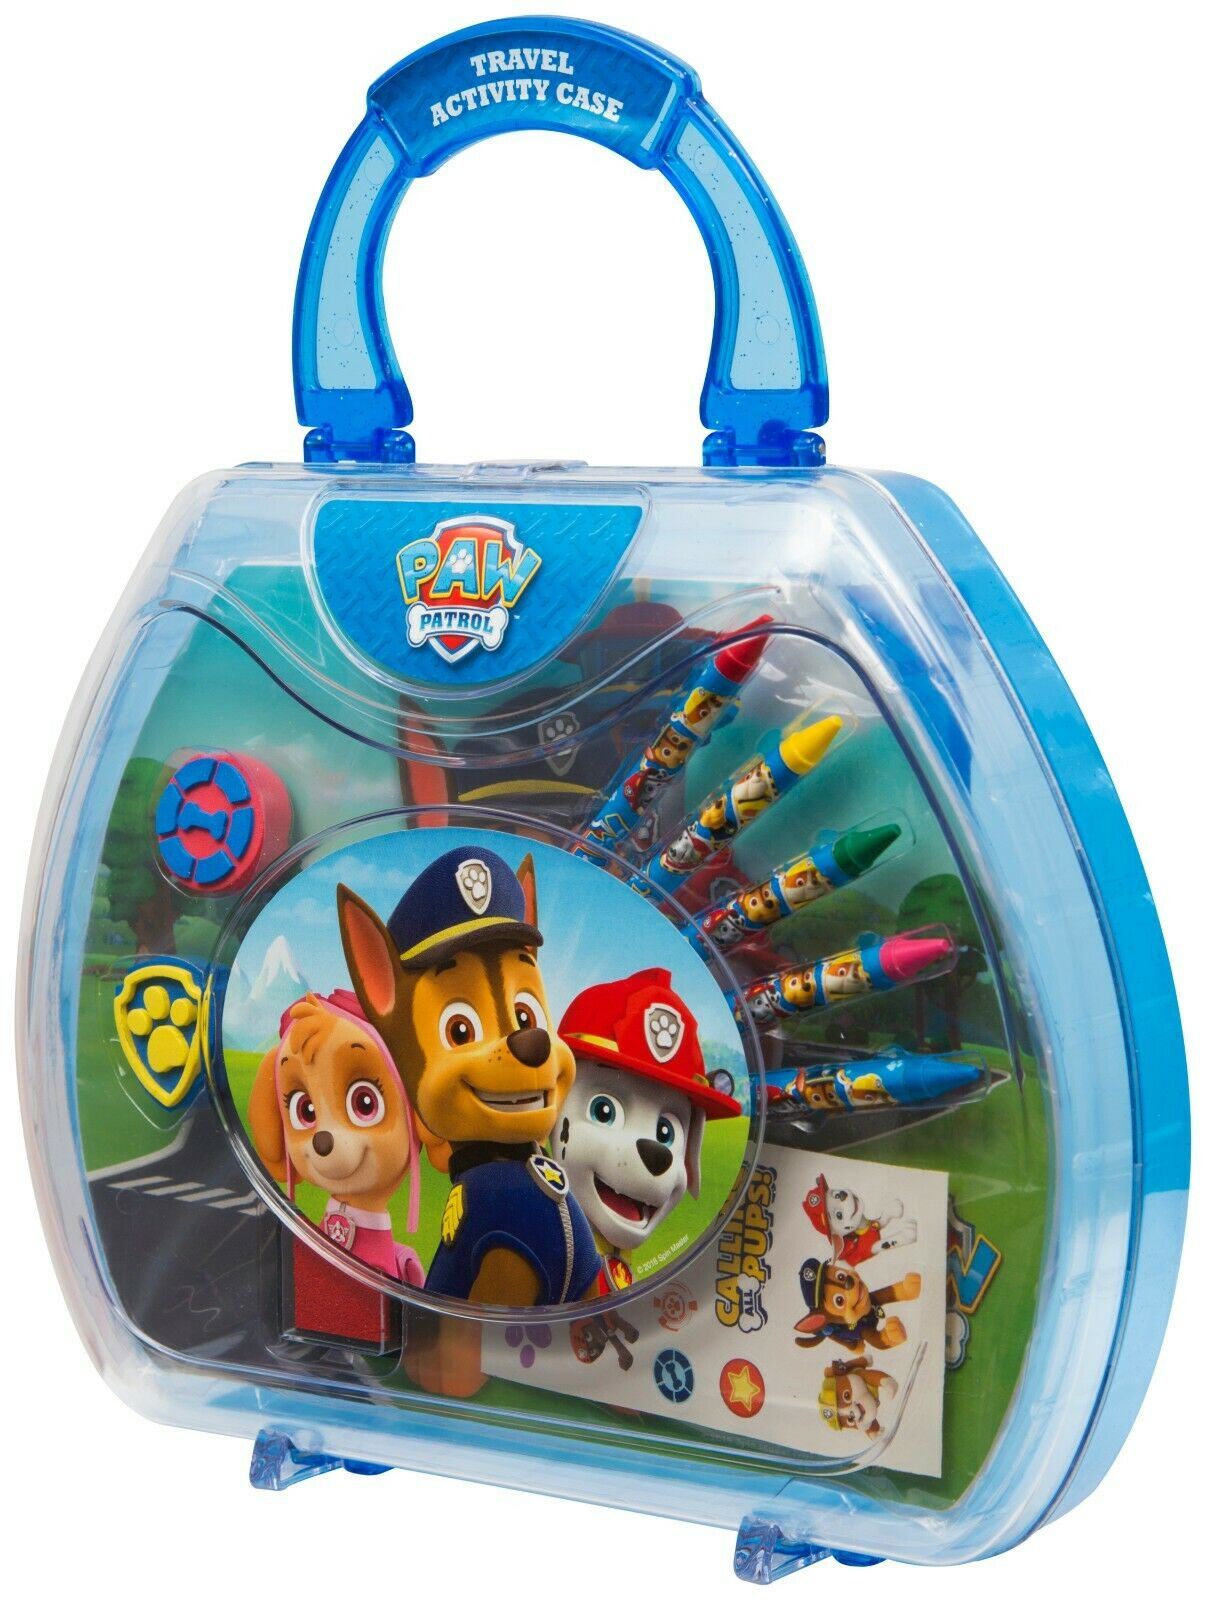 Paw Patrol Travel Carry Along Art Case Painting Toy Set